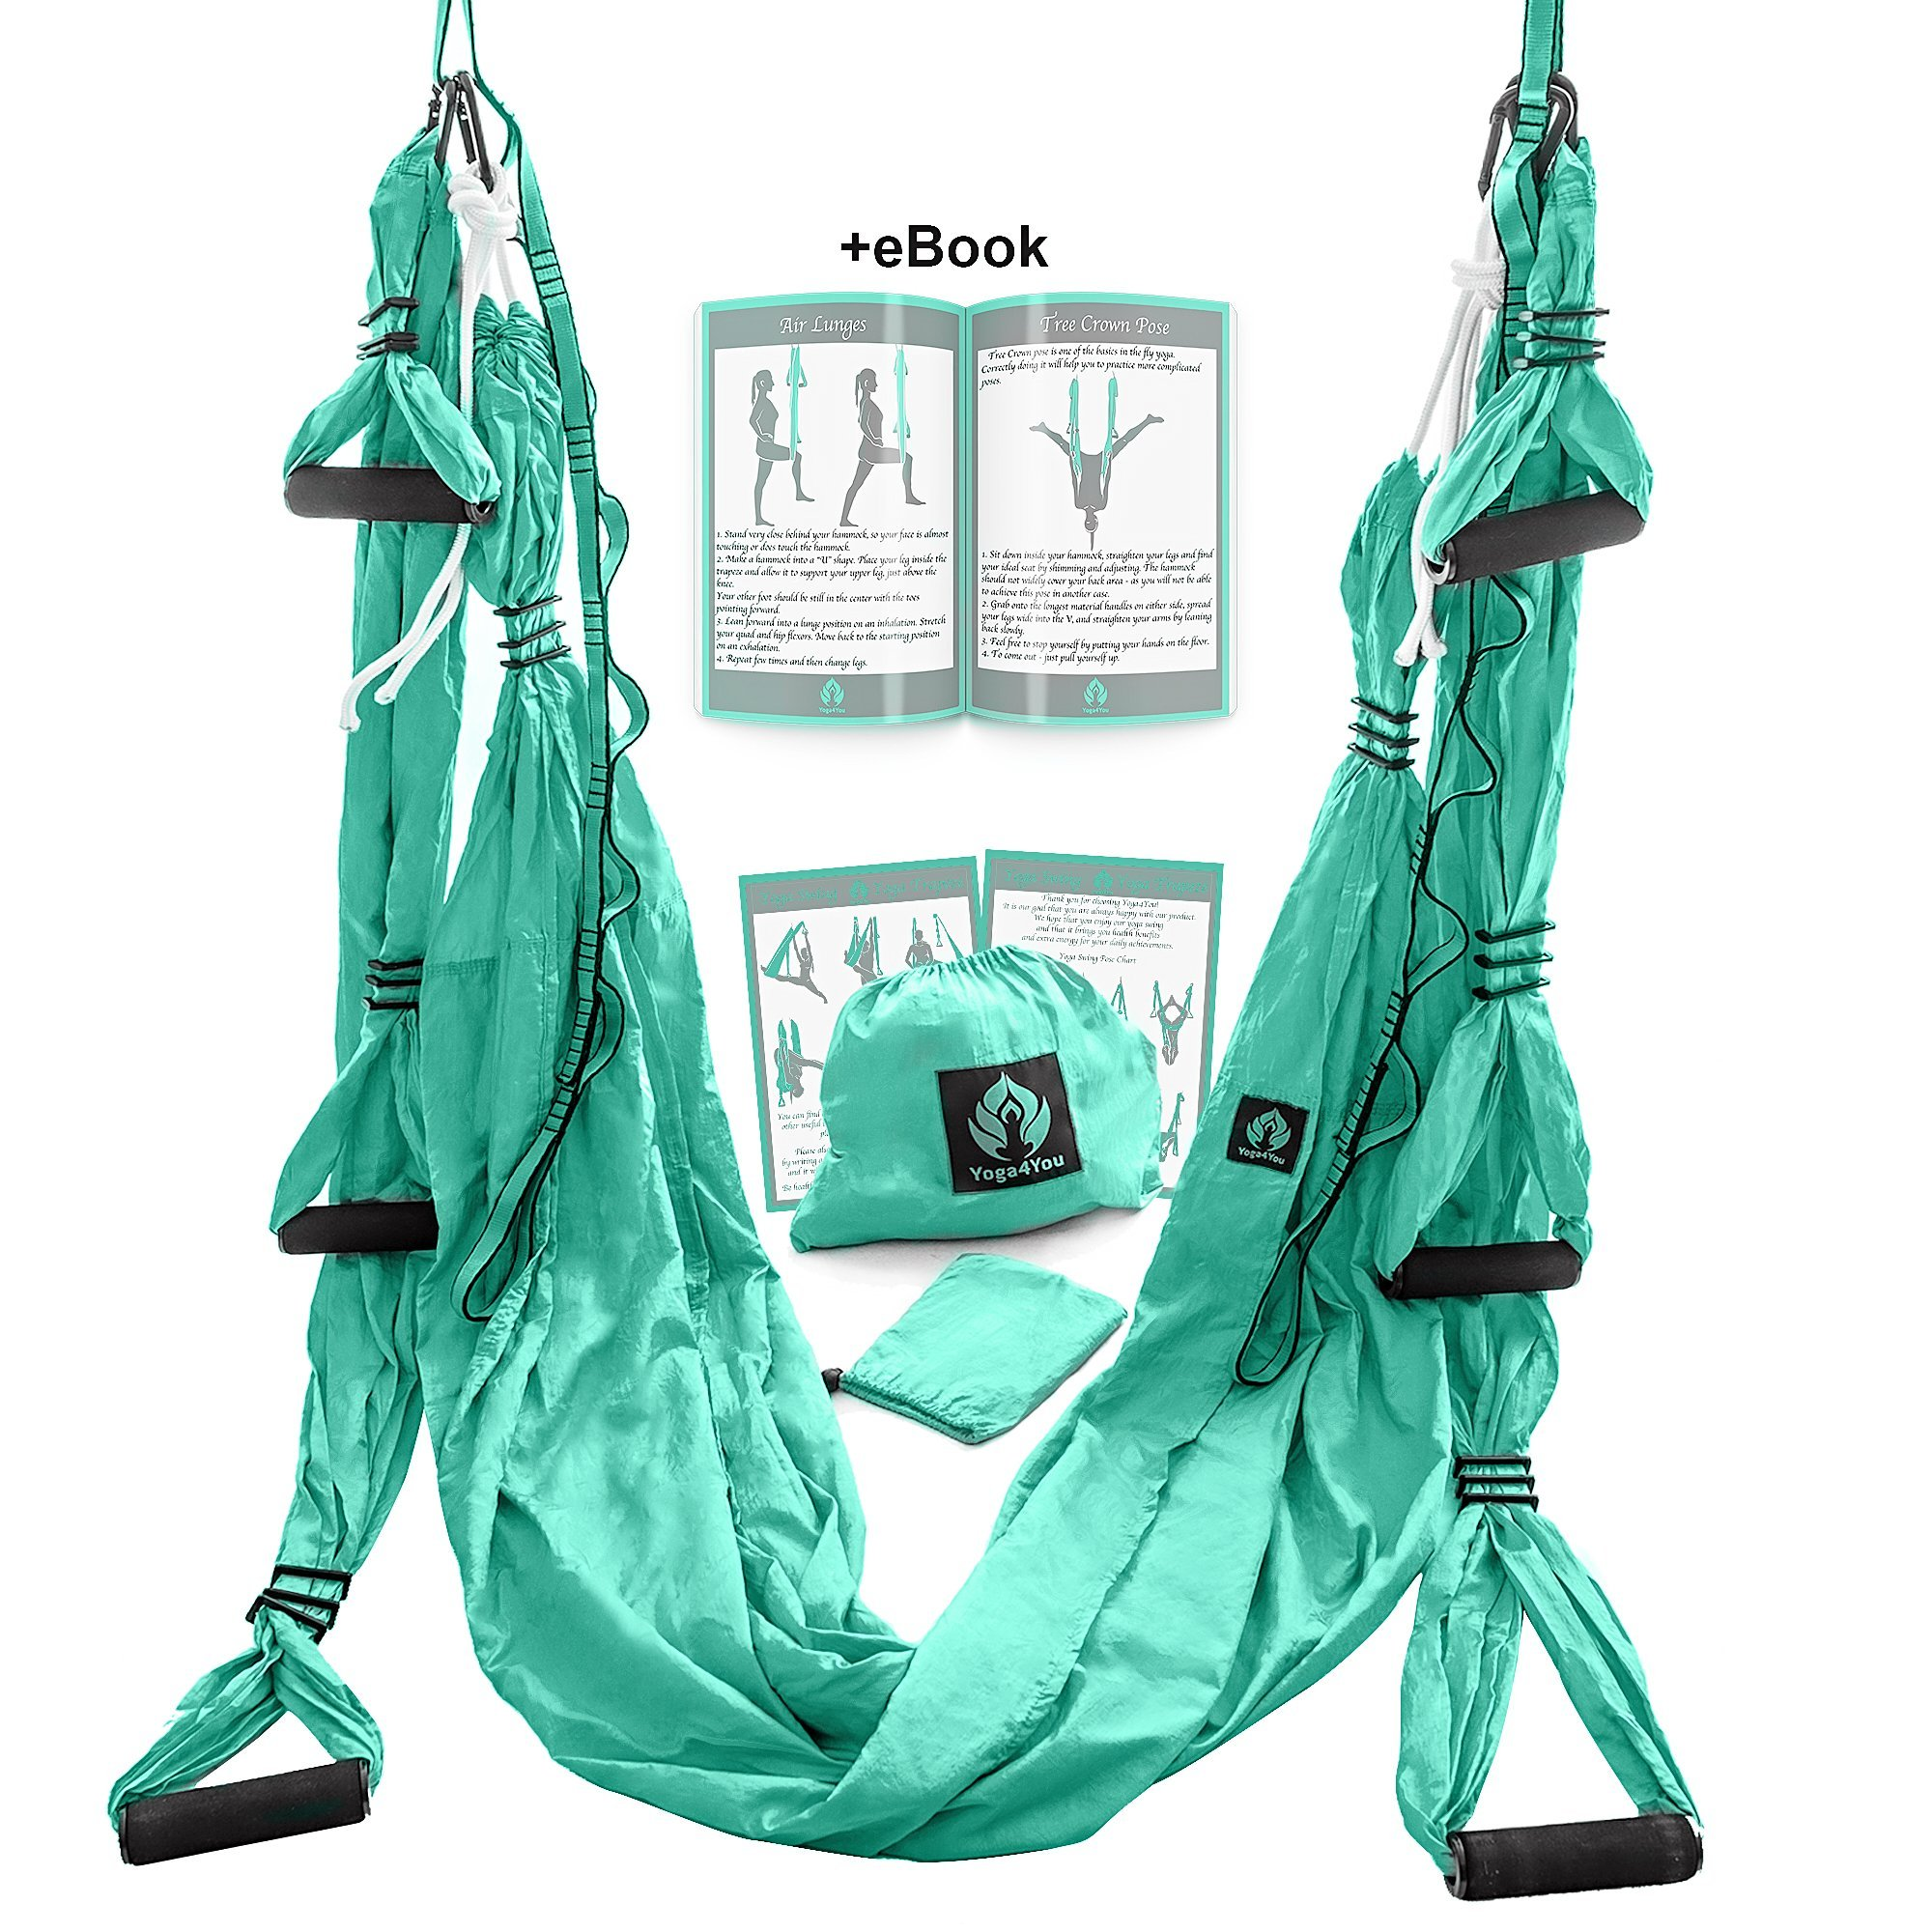 Aerial Yoga Swing Set - Yoga Hammock - Aerial Trapeze Kit + 2 Extension Straps & eBook - Large Flying Yoga Inversion Tool - Anti-Gravity Hanging Yoga Sling - Indoor Outdoor Fly Yoga - Men Women Kids by Yoga4You (Image #6)